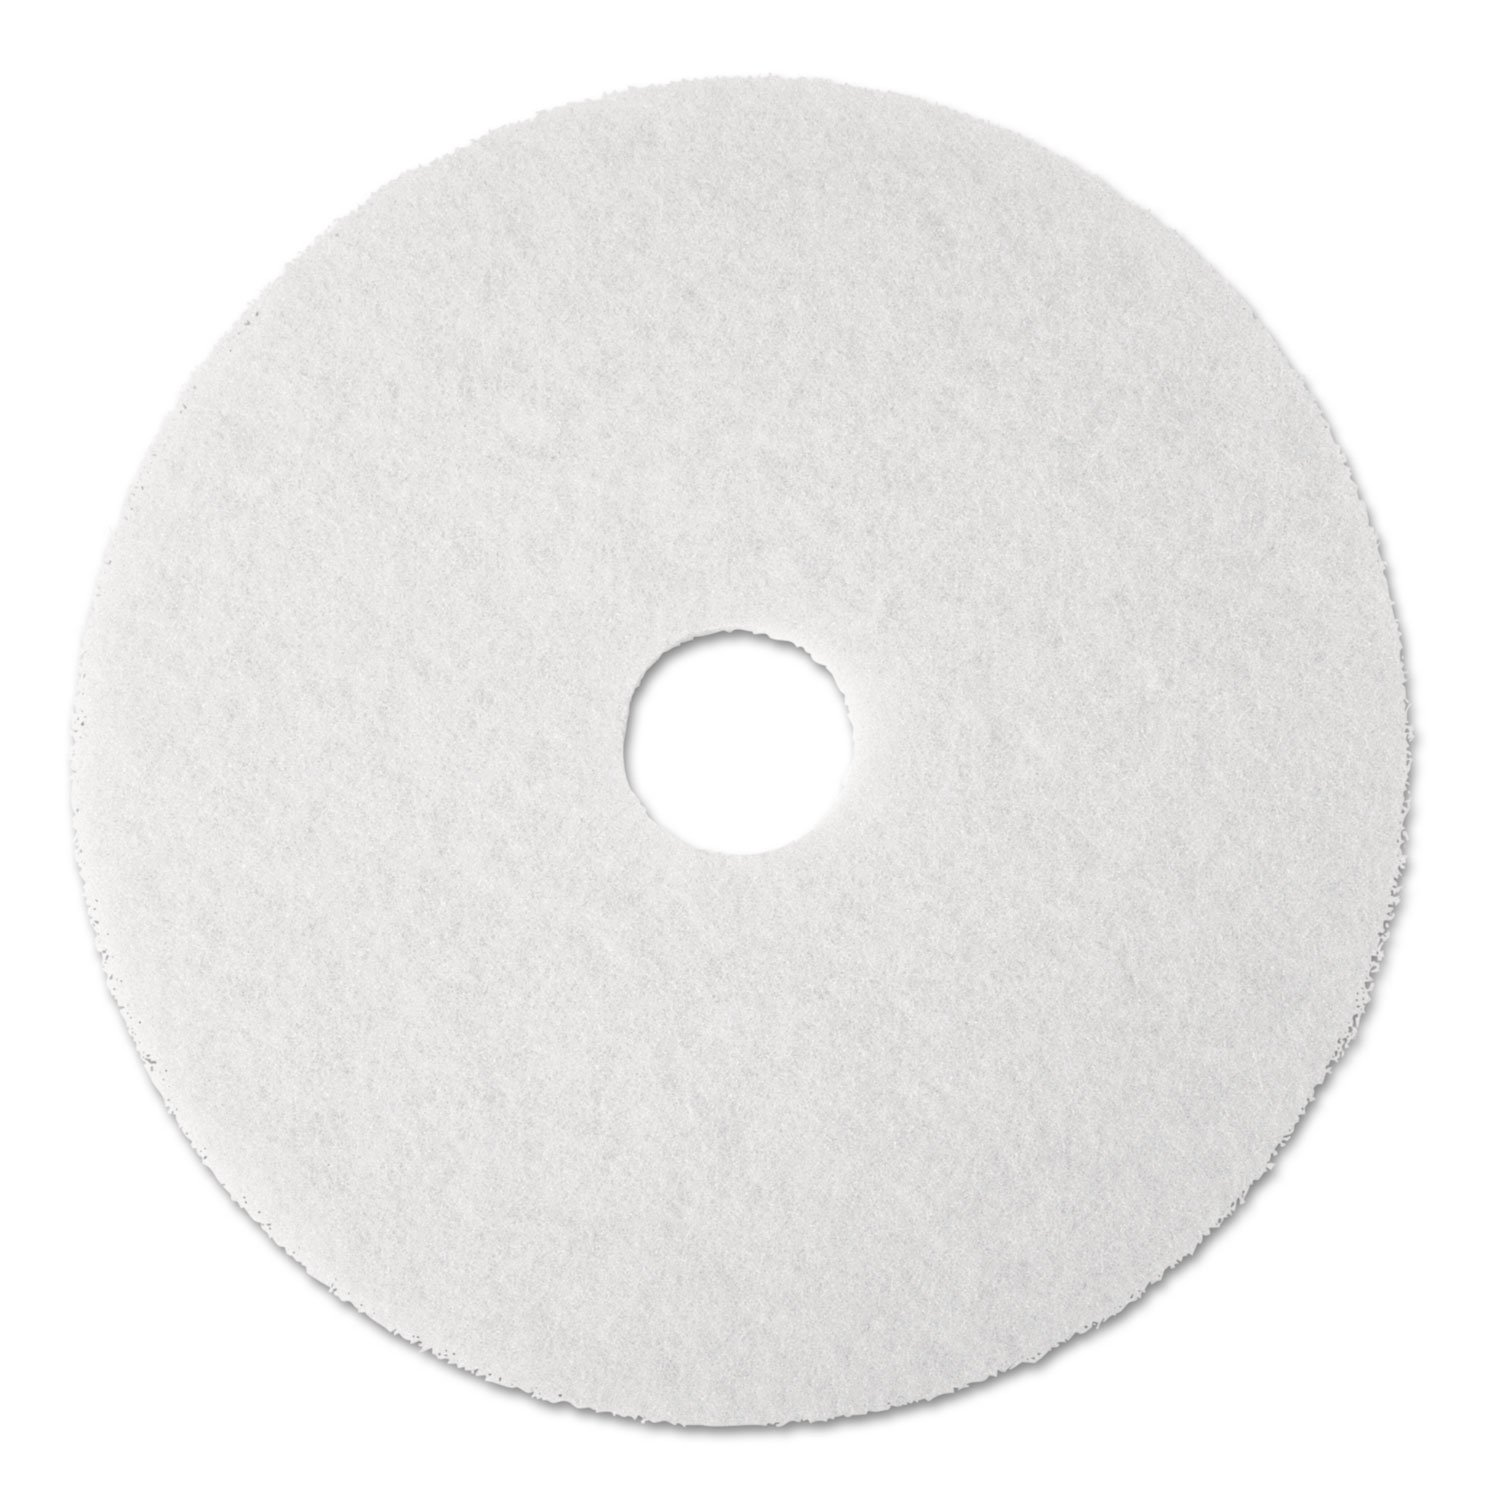 3M Low Speed White Super Polishing Floor Pad 4100 - Round, 12 inch Diameter, 1 inch Thick, Perforated Center Hole, To Buff Very Soft Finish Or Polish Soft Wax On Wood Floor - 5 per case.